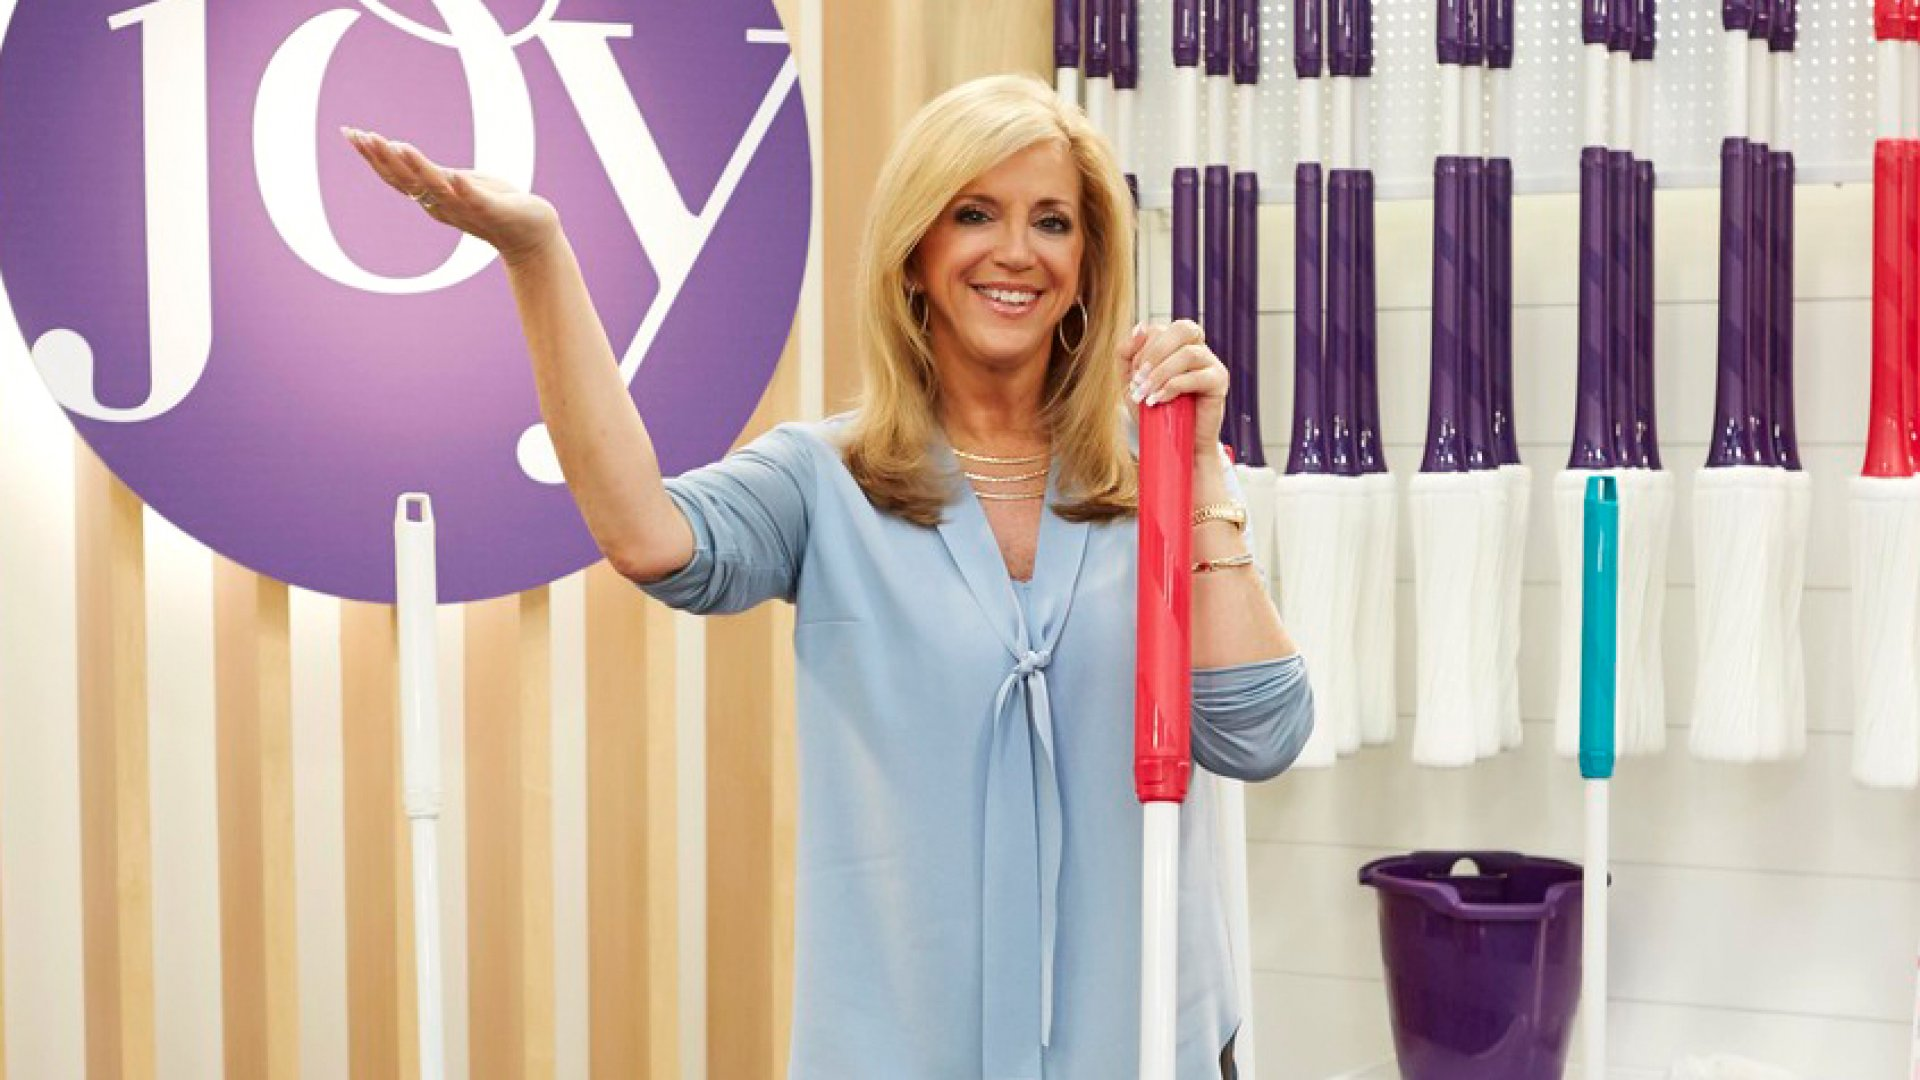 Joy Mangano, creator of the Miracle Mop and founder of Ingenious Designs, is now the subject of a major motion picture. Success didn't come easy.